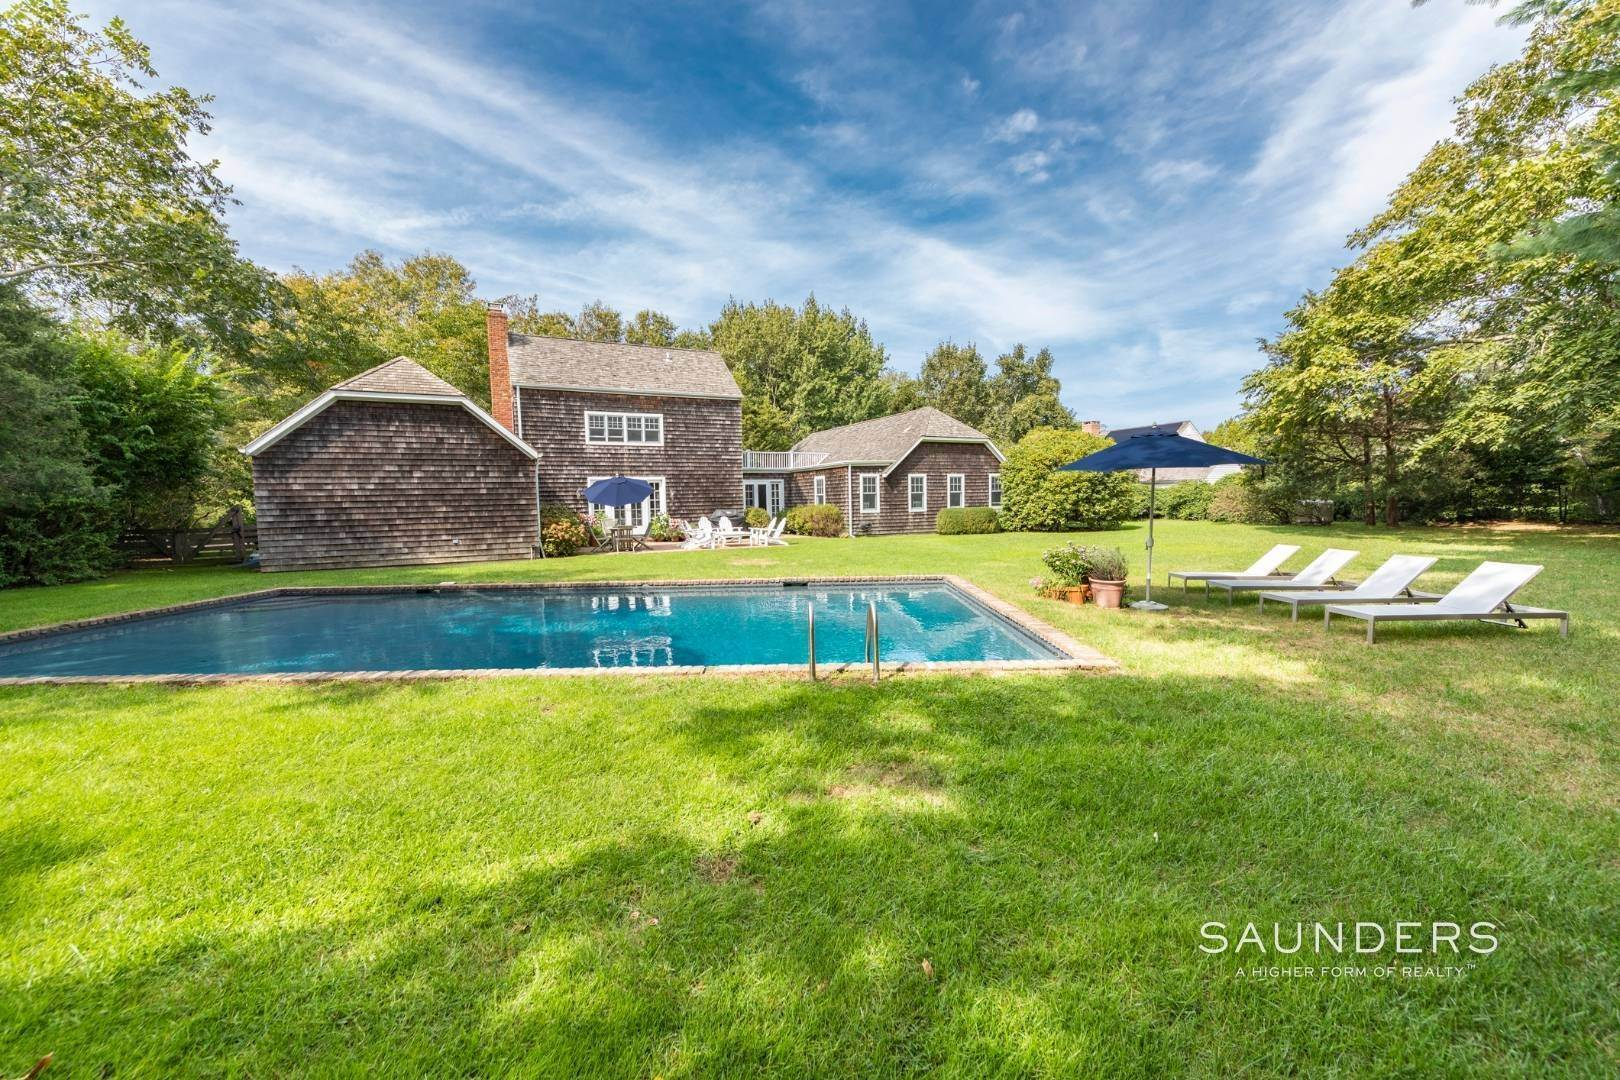 Single Family Homes for Sale at House Of Dreams 39 Toppings Field Court, Bridgehampton, Southampton Town, NY 11932